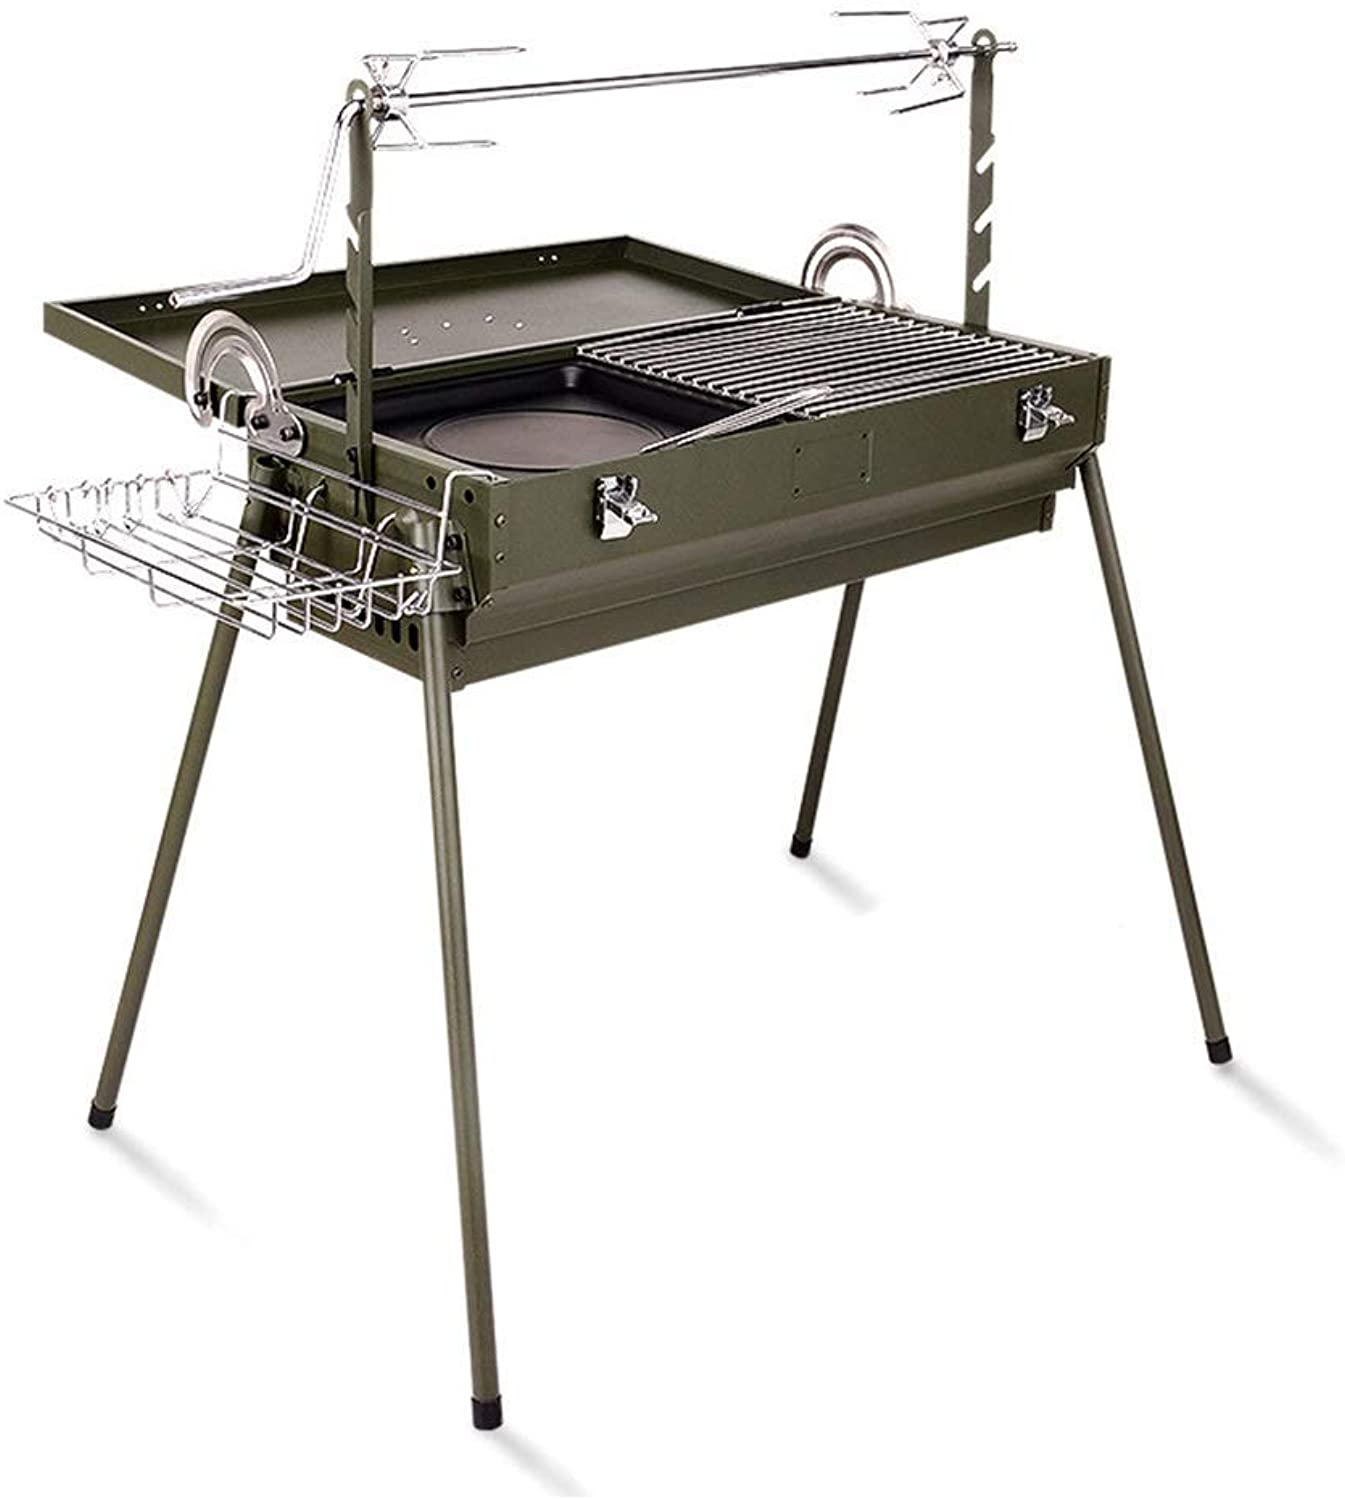 BBQ Supplies Barbecue Easy Barbecues Tool Set Grill Stainless Steel Makita Oven Charcoal Tools redating Fork Garden Picnic Beach BBQ, Full Accessories Foldable